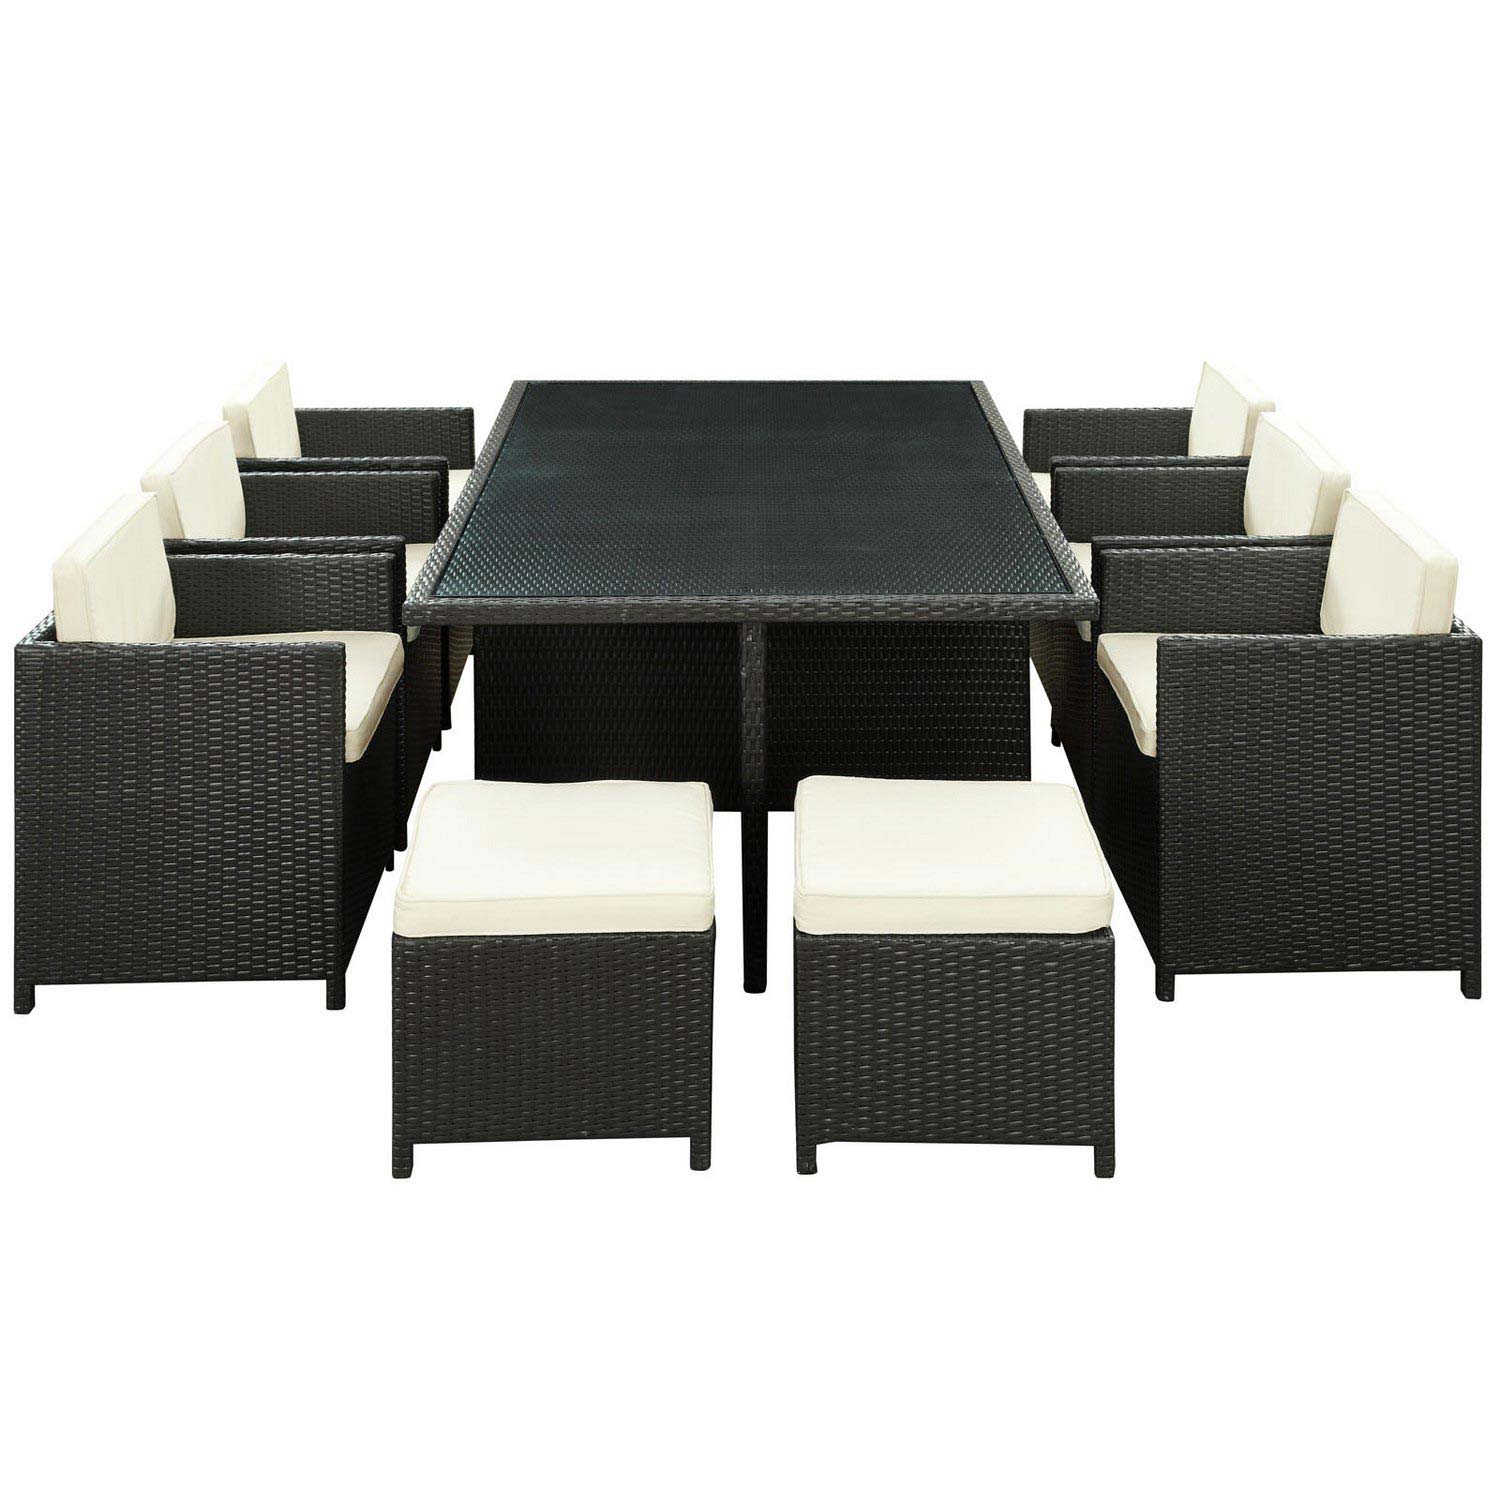 Modway Reversal 11 Piece Outdoor Patio Dining Set - Espresso/White